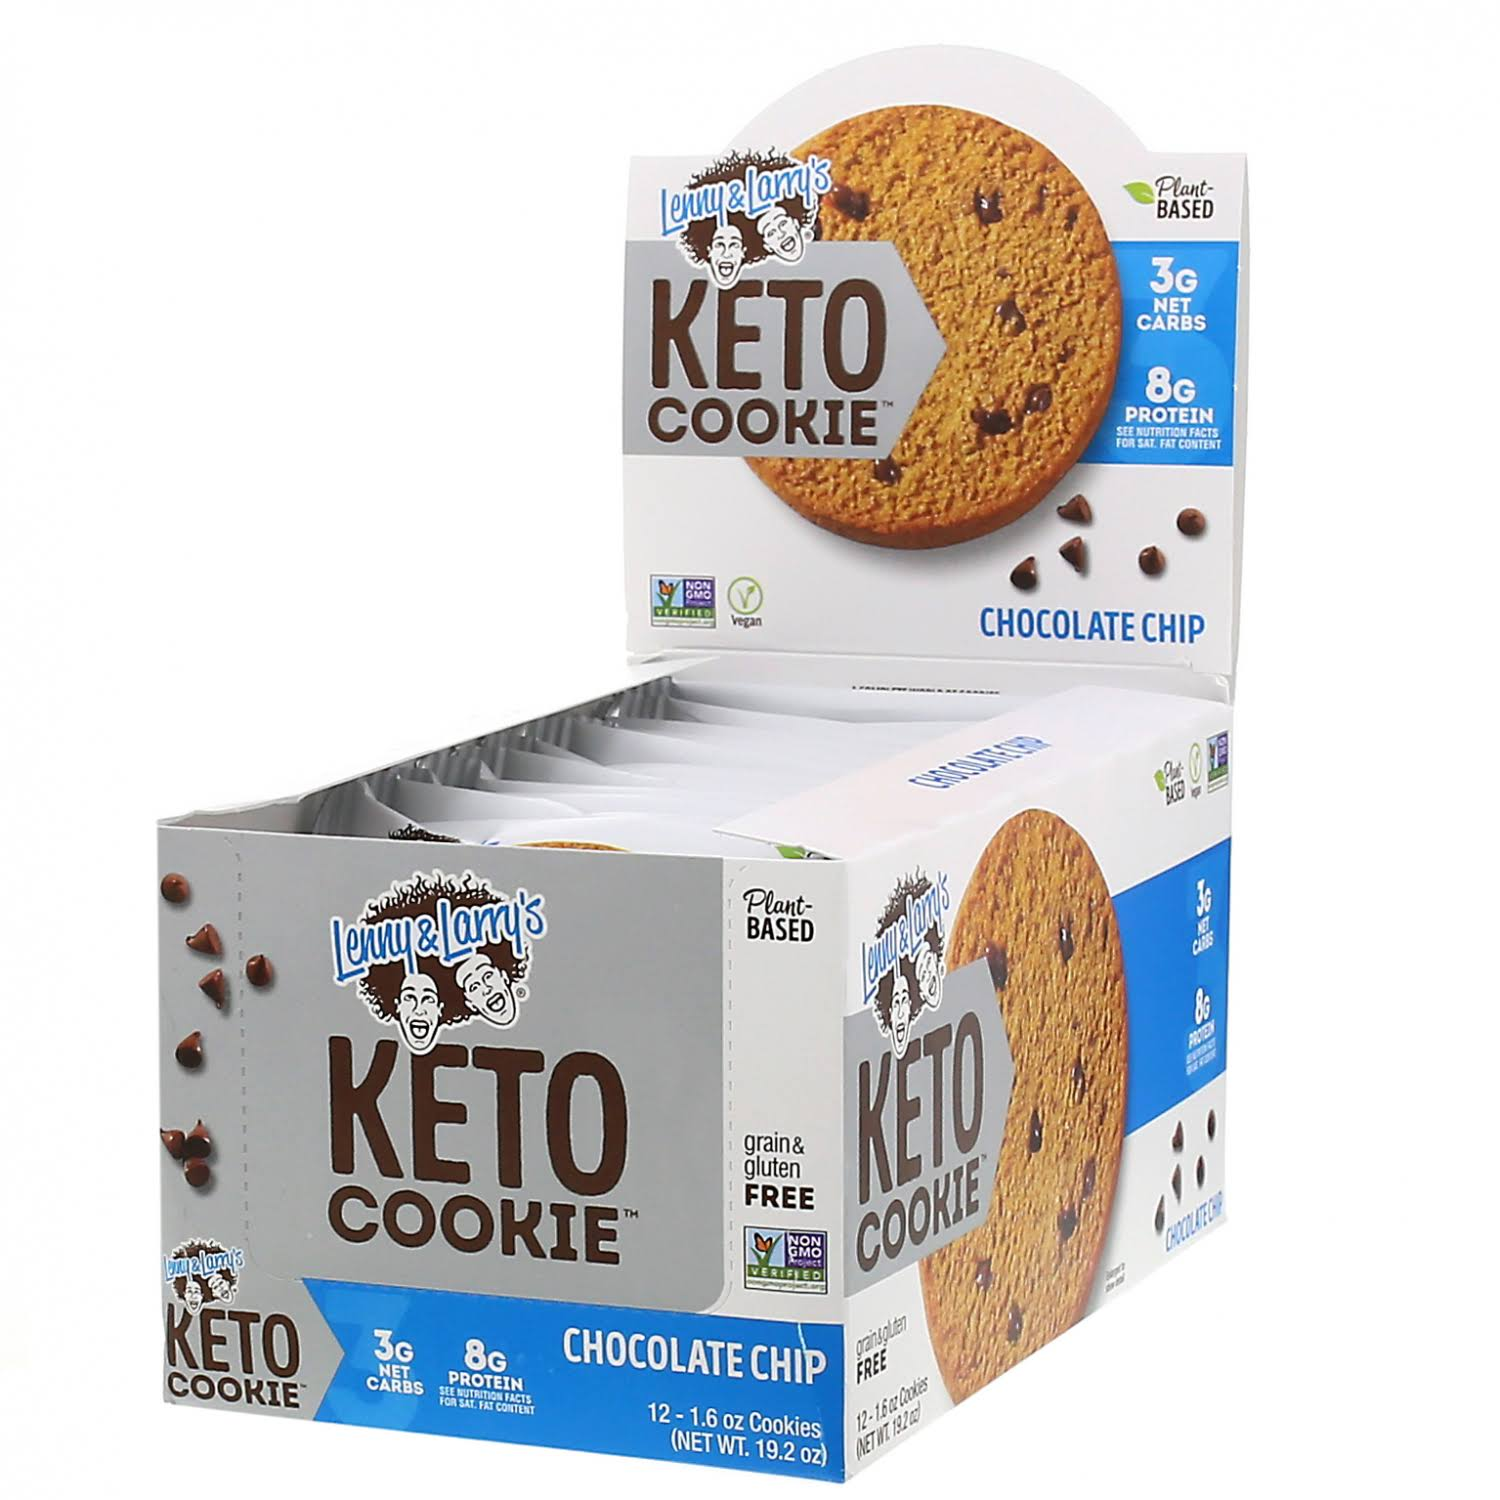 Lenny & Larry's Keto Cookie, Chocolate Chip, 12 Cookies